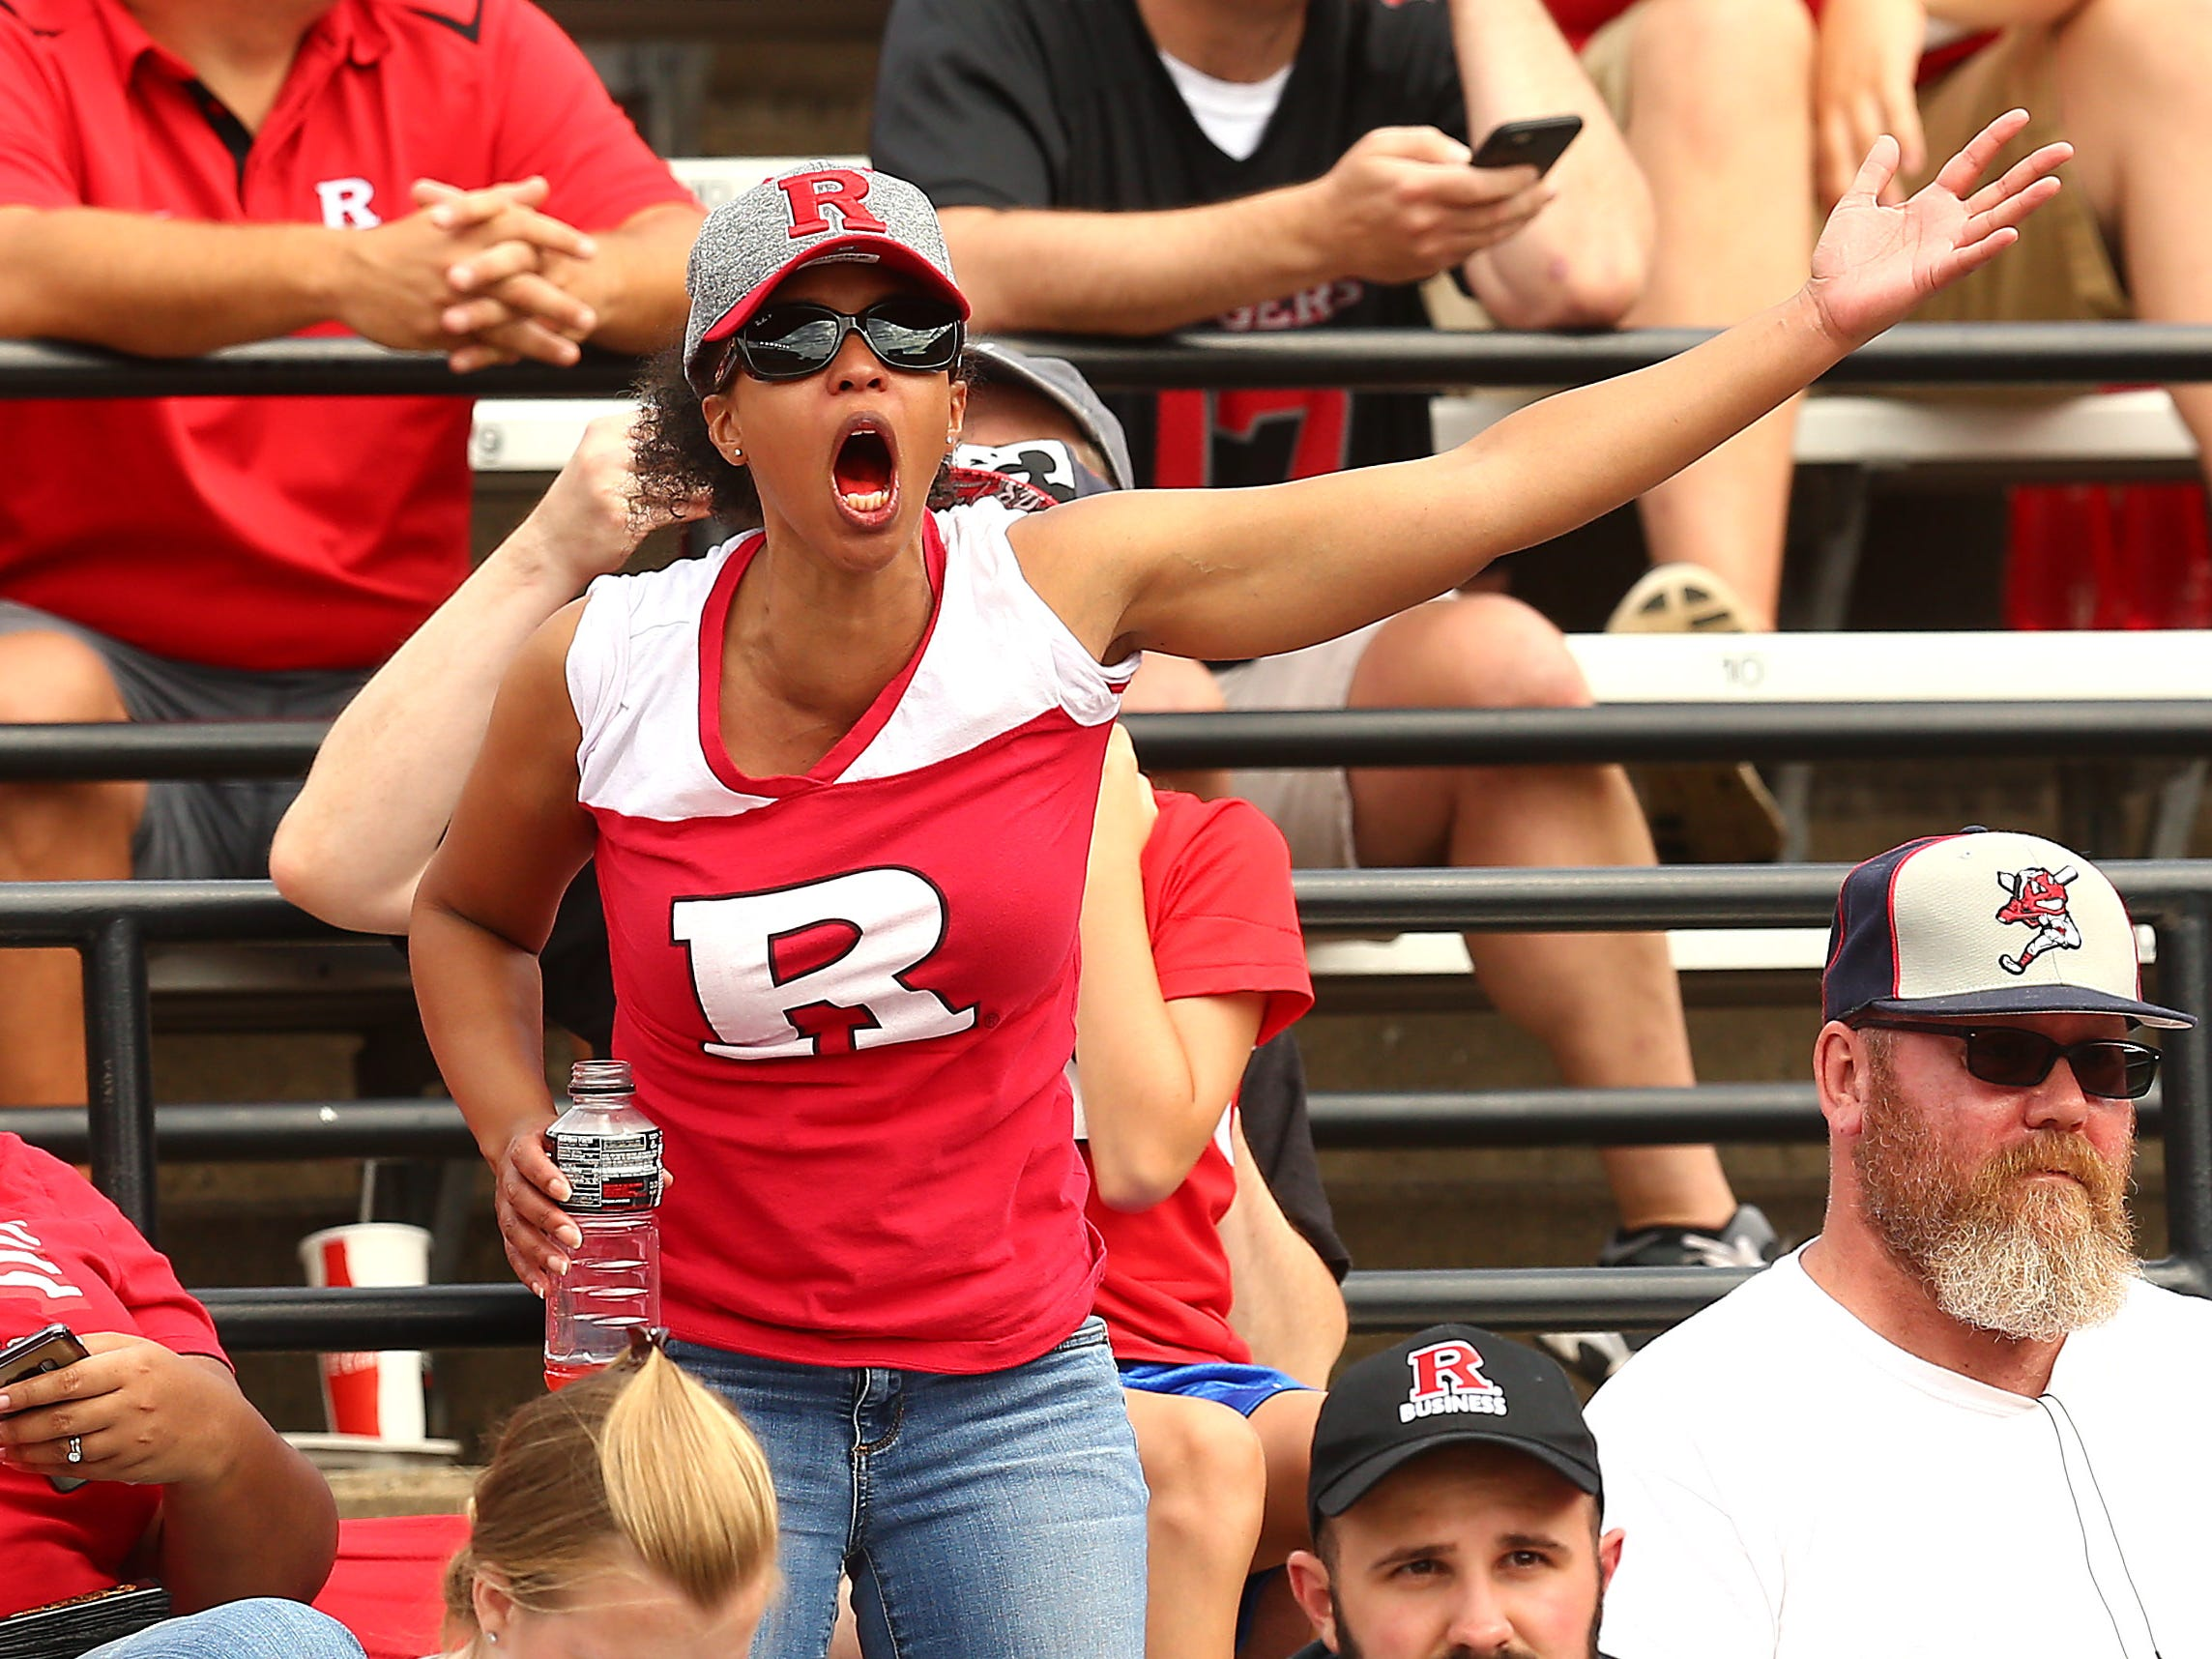 A Rutgers Scarlet Knights fan upset at a huge gain by the Buffalo Bulls at HighPoint.com Stadium in Piscataway. September 22, 2018, Piscataway, NJ